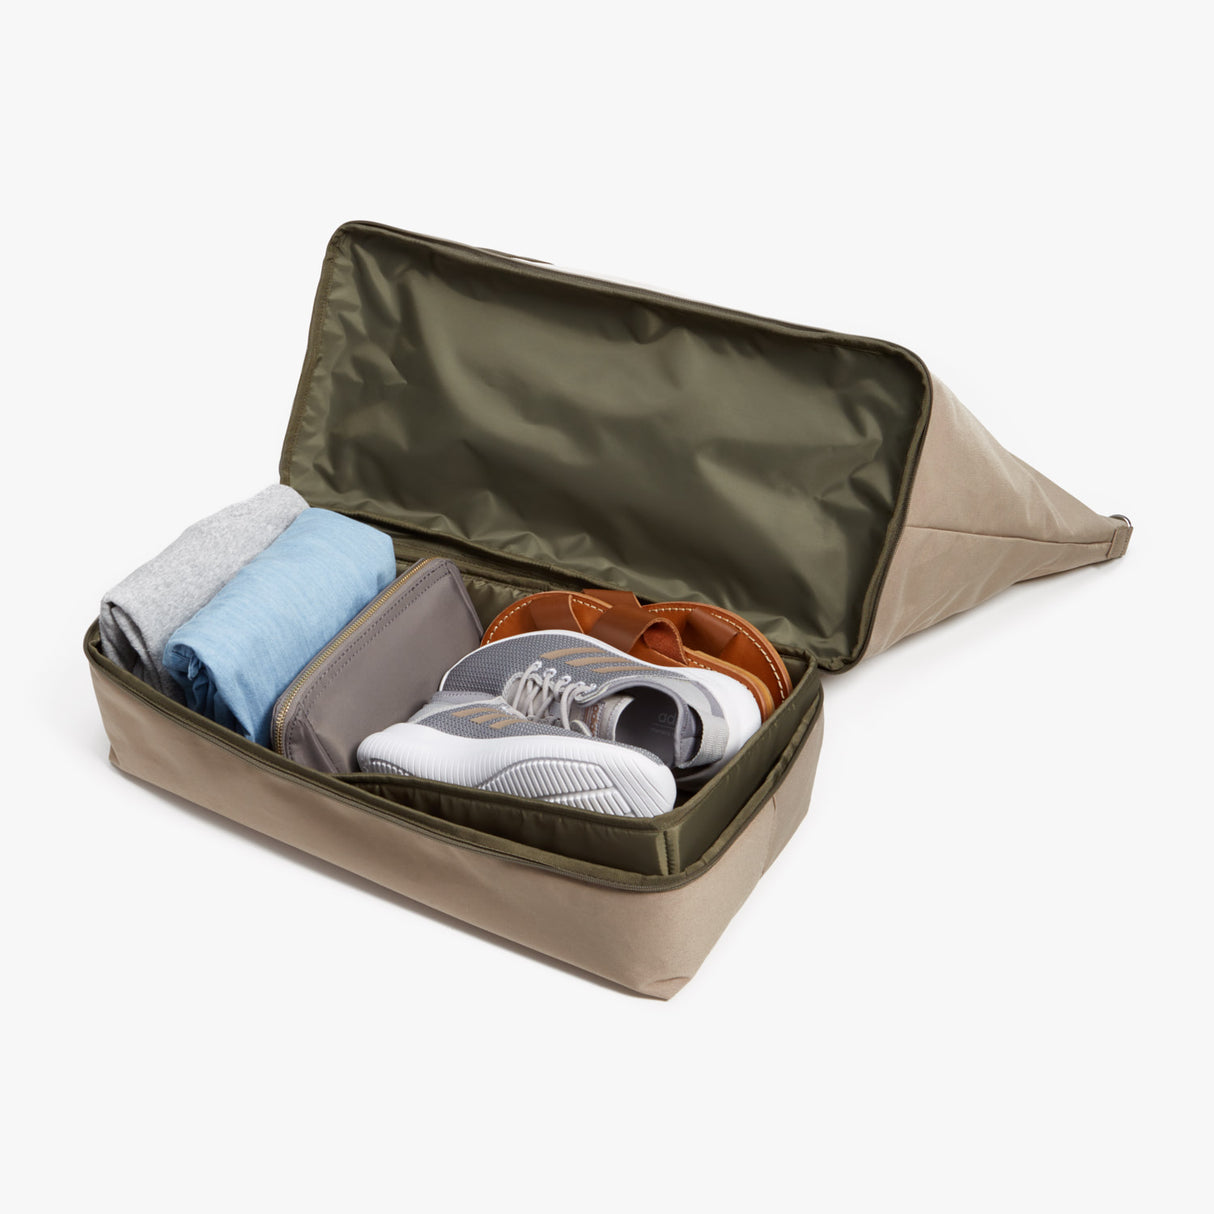 Bottom Pocket - Catalina Deluxe - 600D Recycled Poly - Tan / Silver / Green - Weekender - Lo & Sons